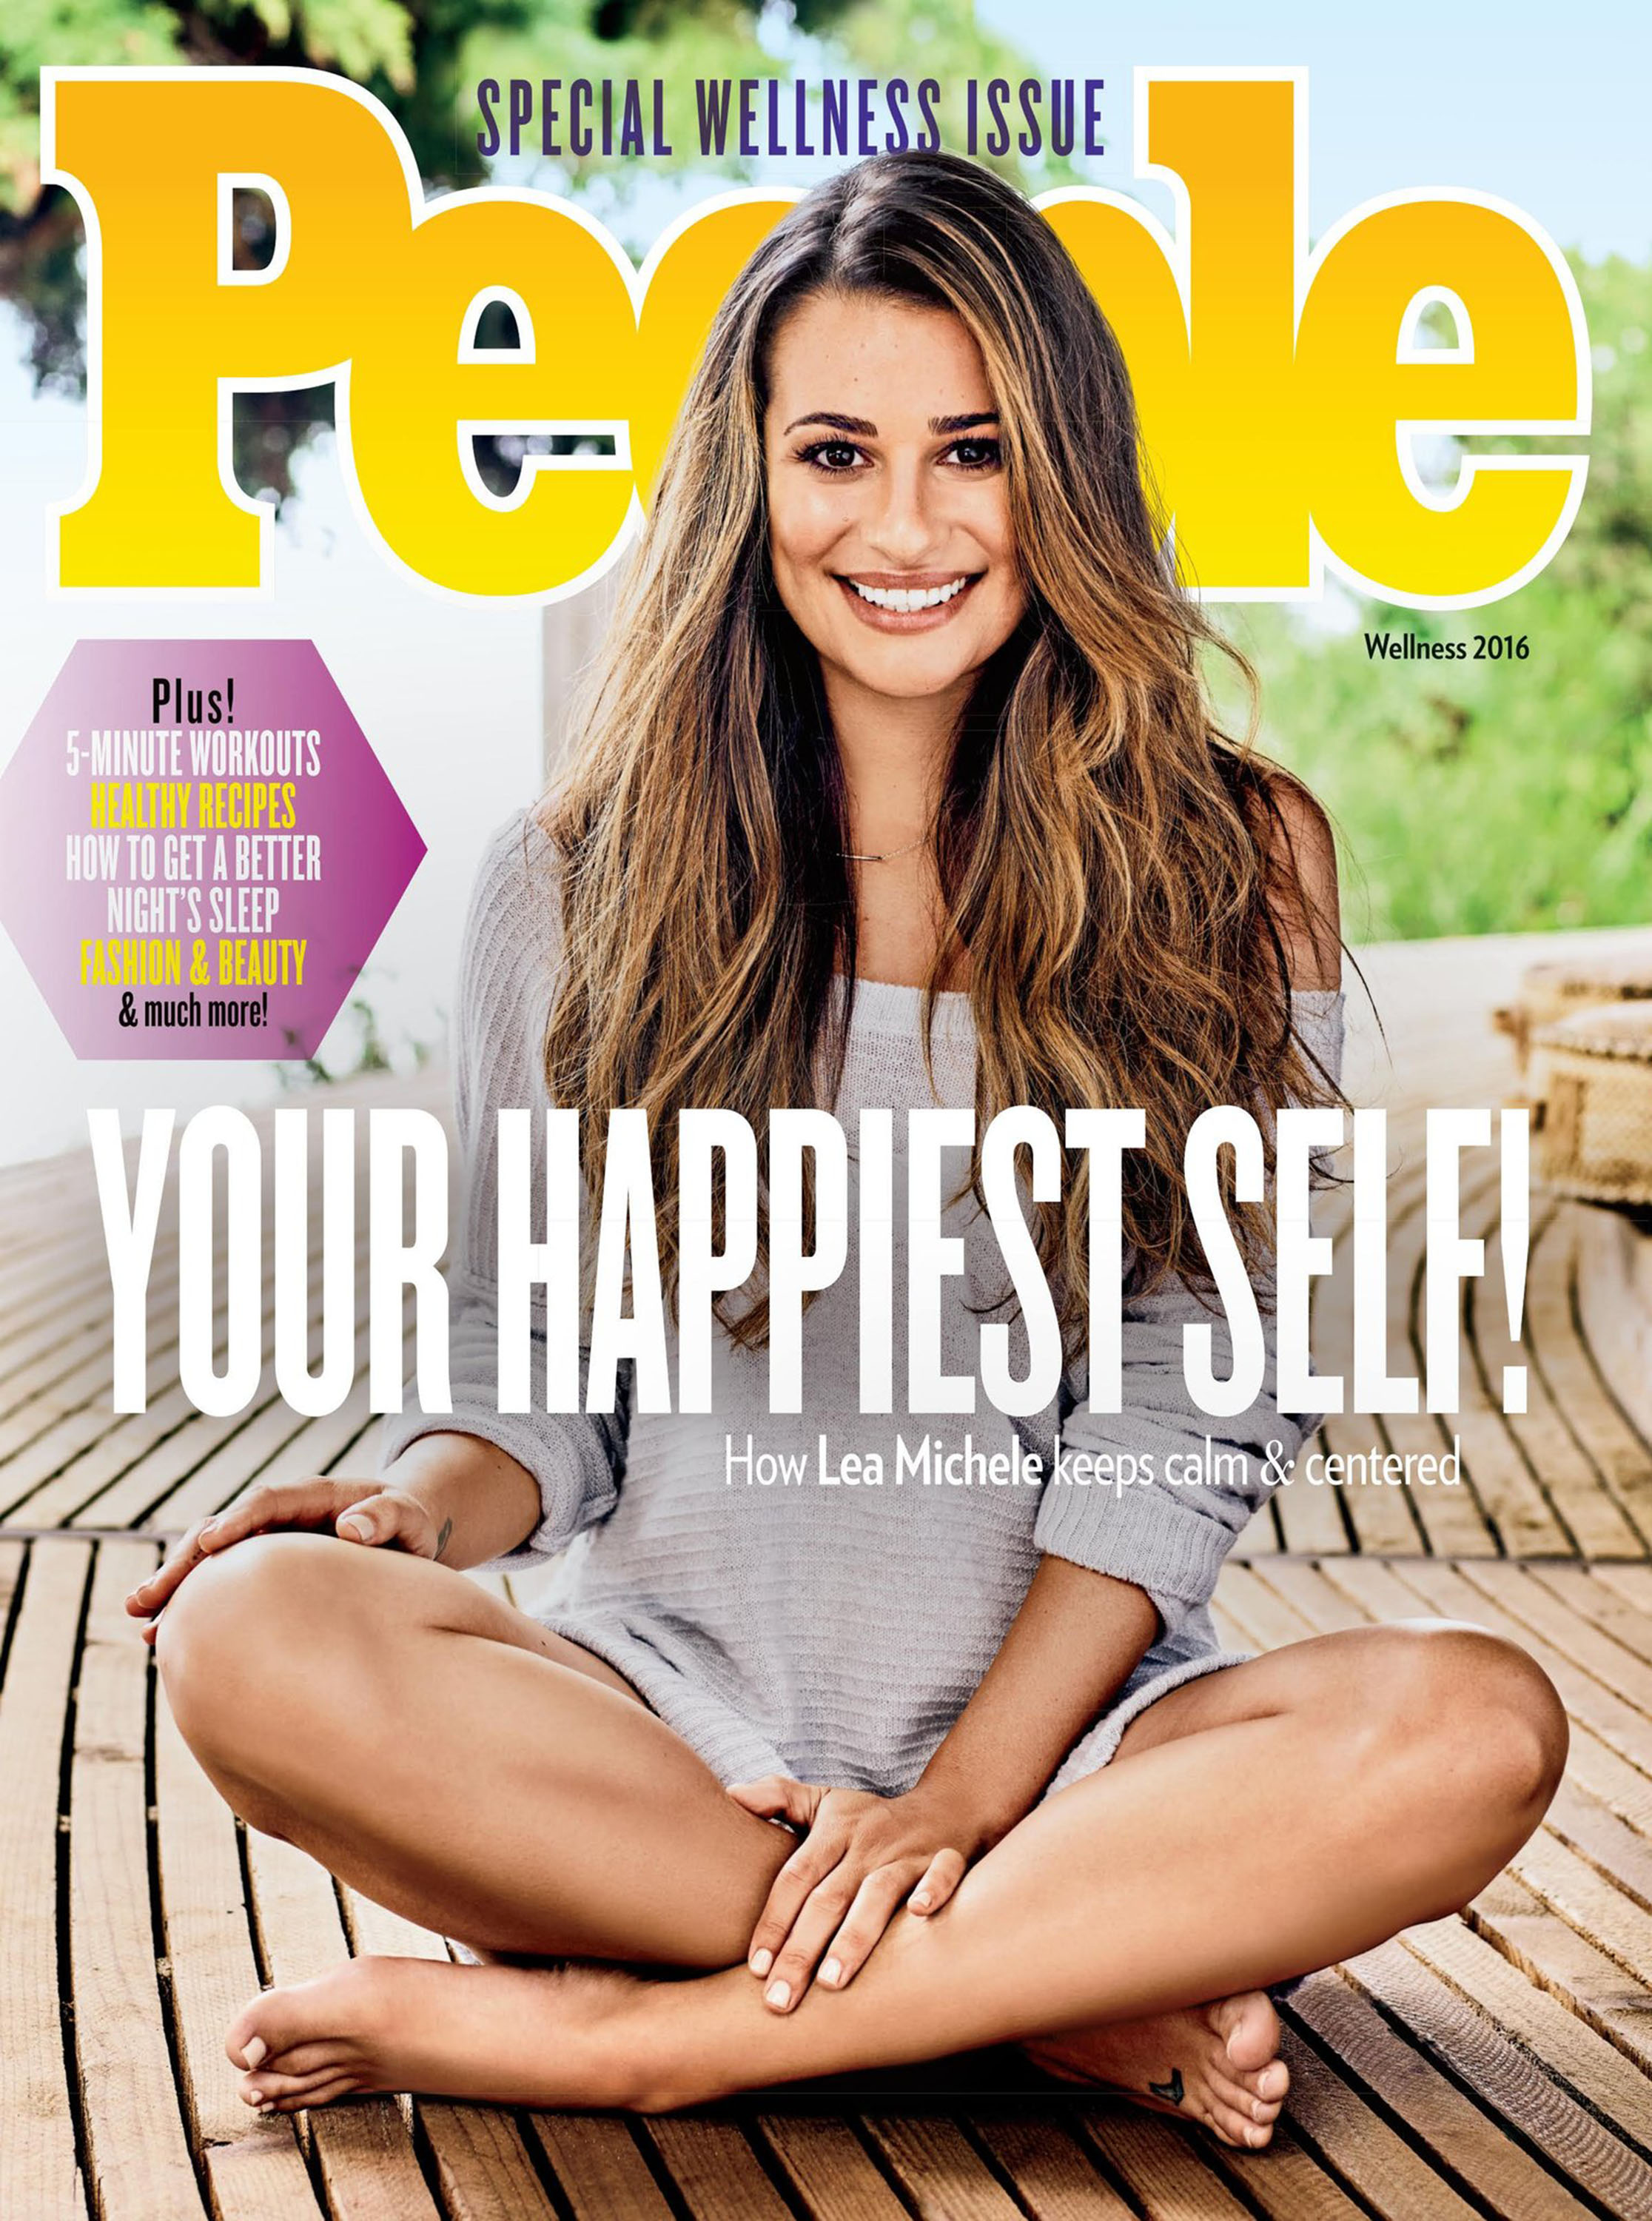 lea michele body wellness magazine special illustrated sports covers clauson hailey swimsuit eat issue shape 2000 she feel way maintains